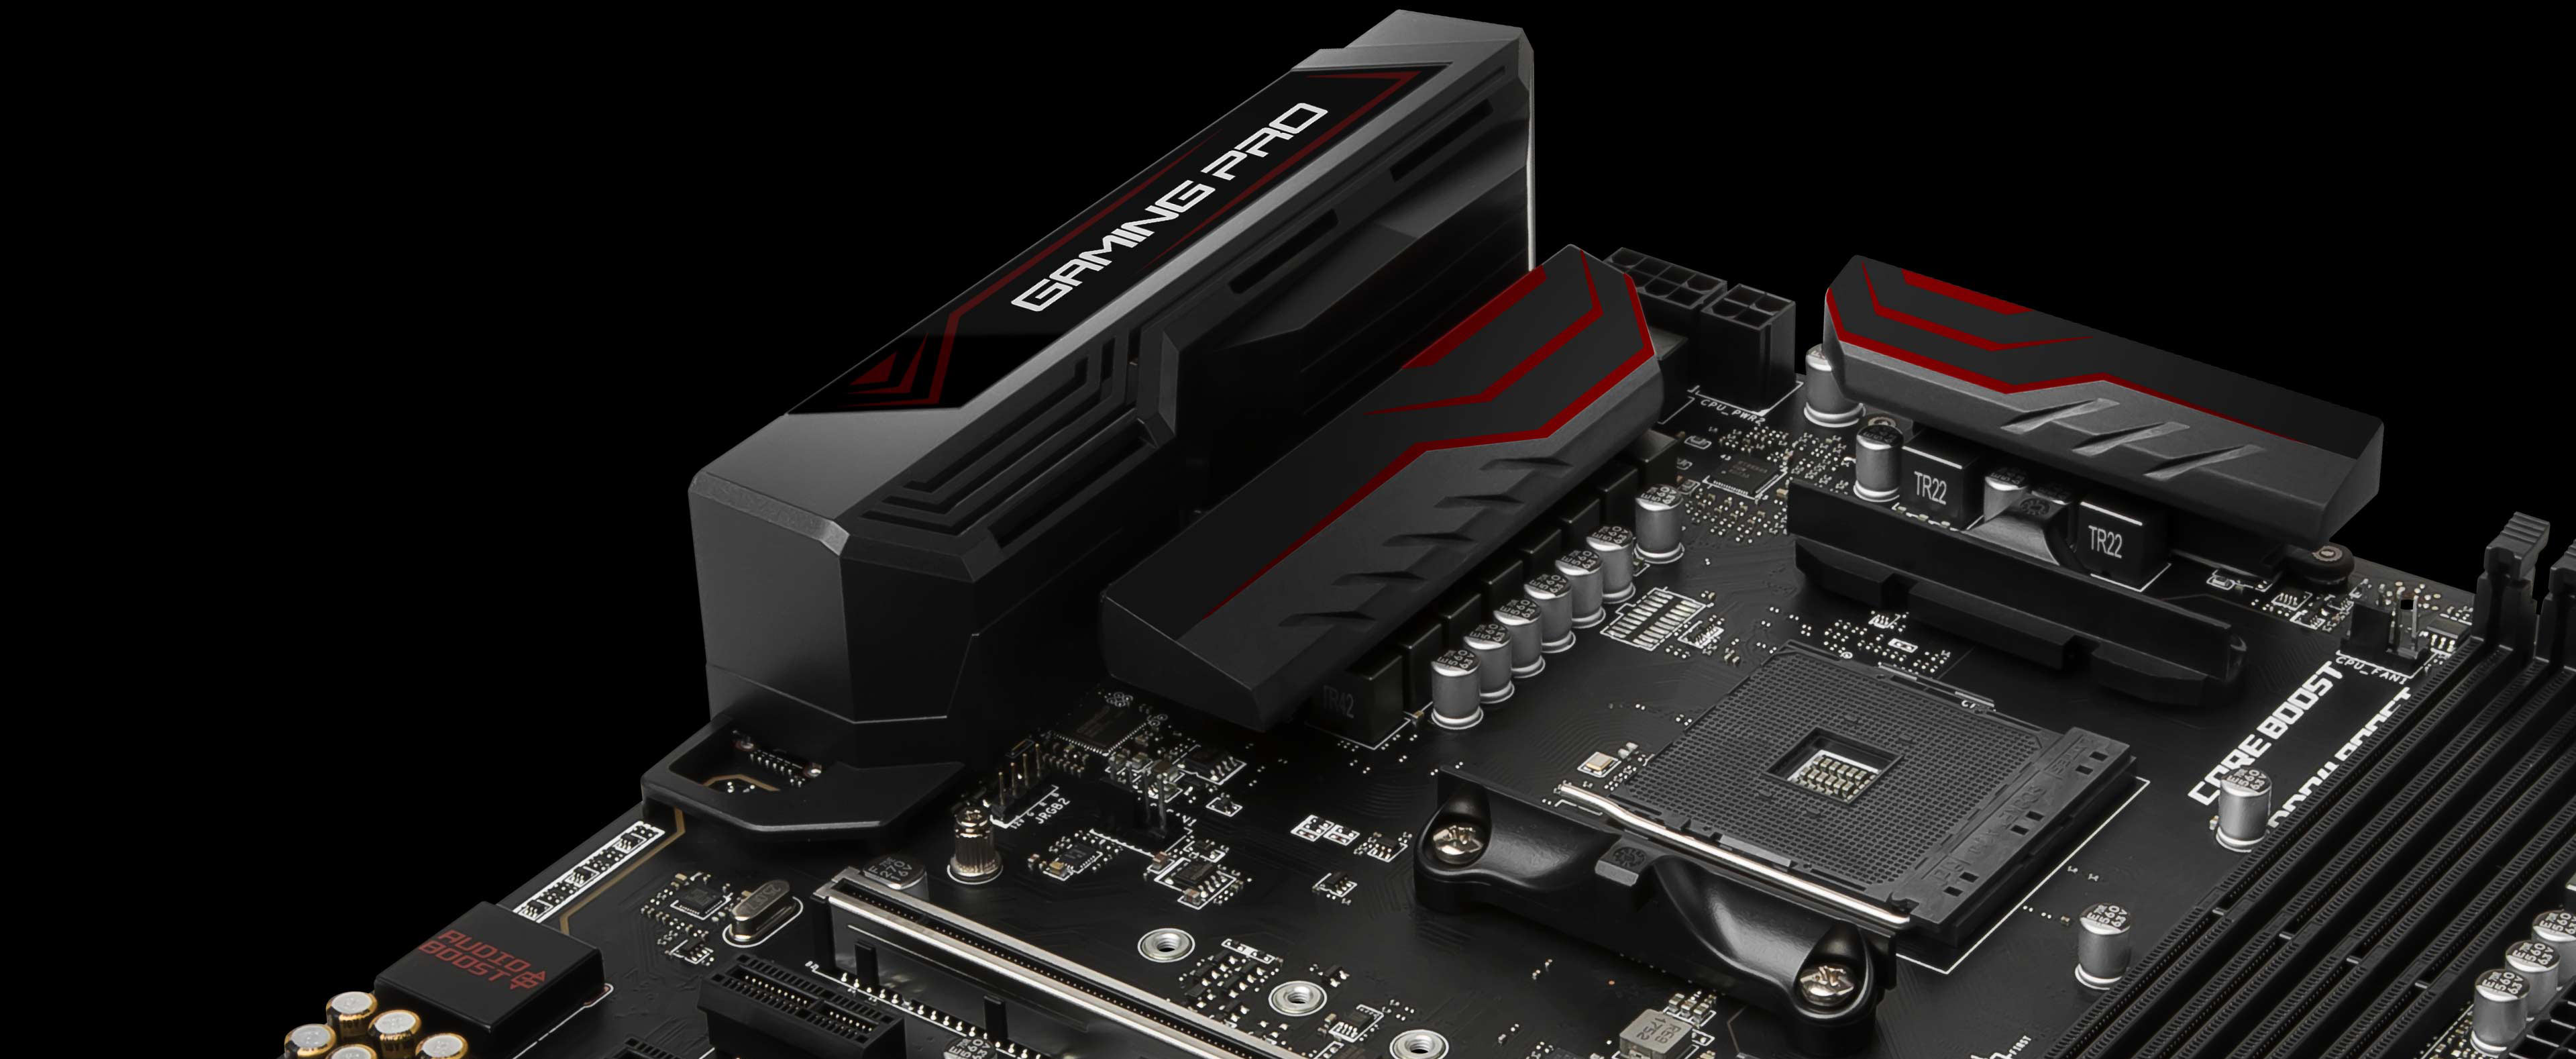 X470 GAMING PRO   Motherboard - The world leader in